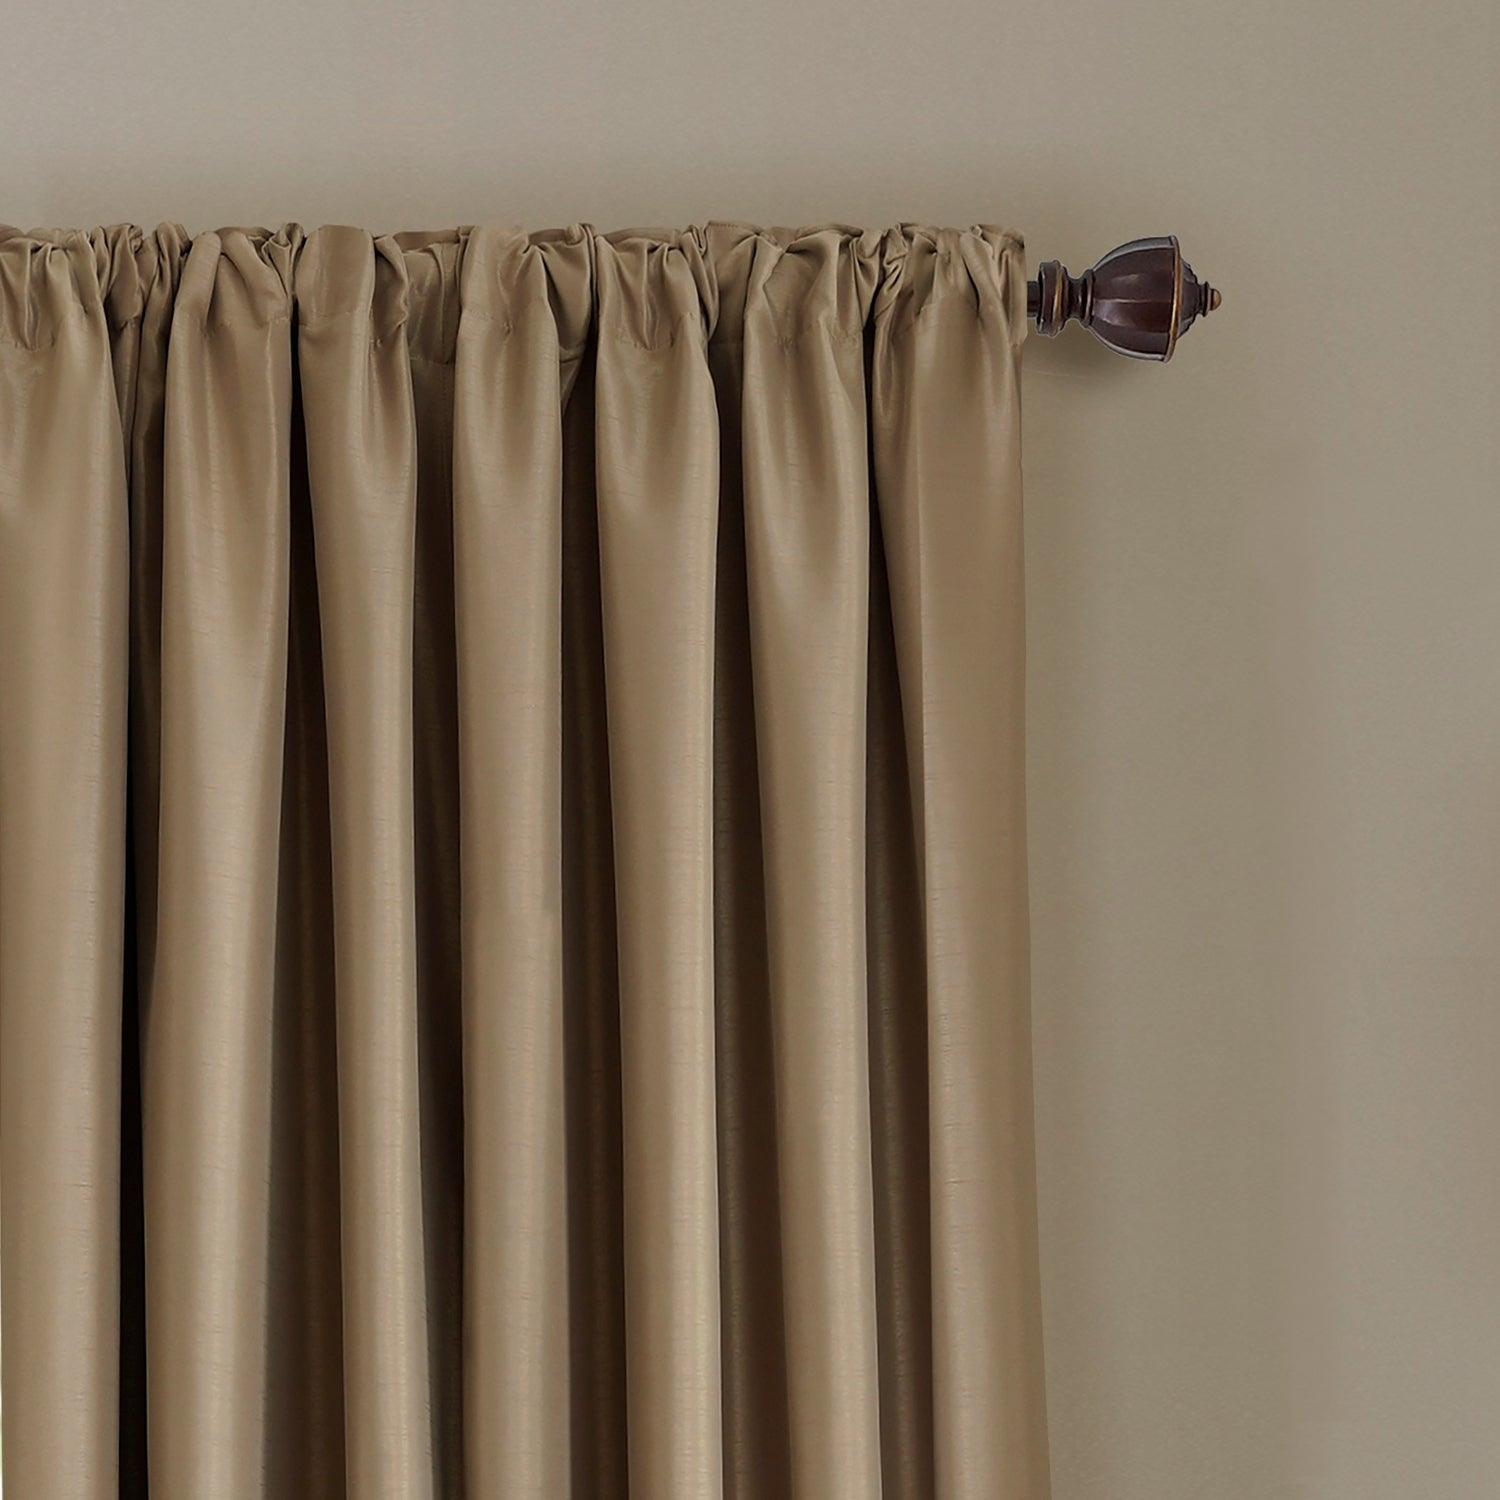 p to valance ombre sheer tailored hang how semi waterfall panel v valances